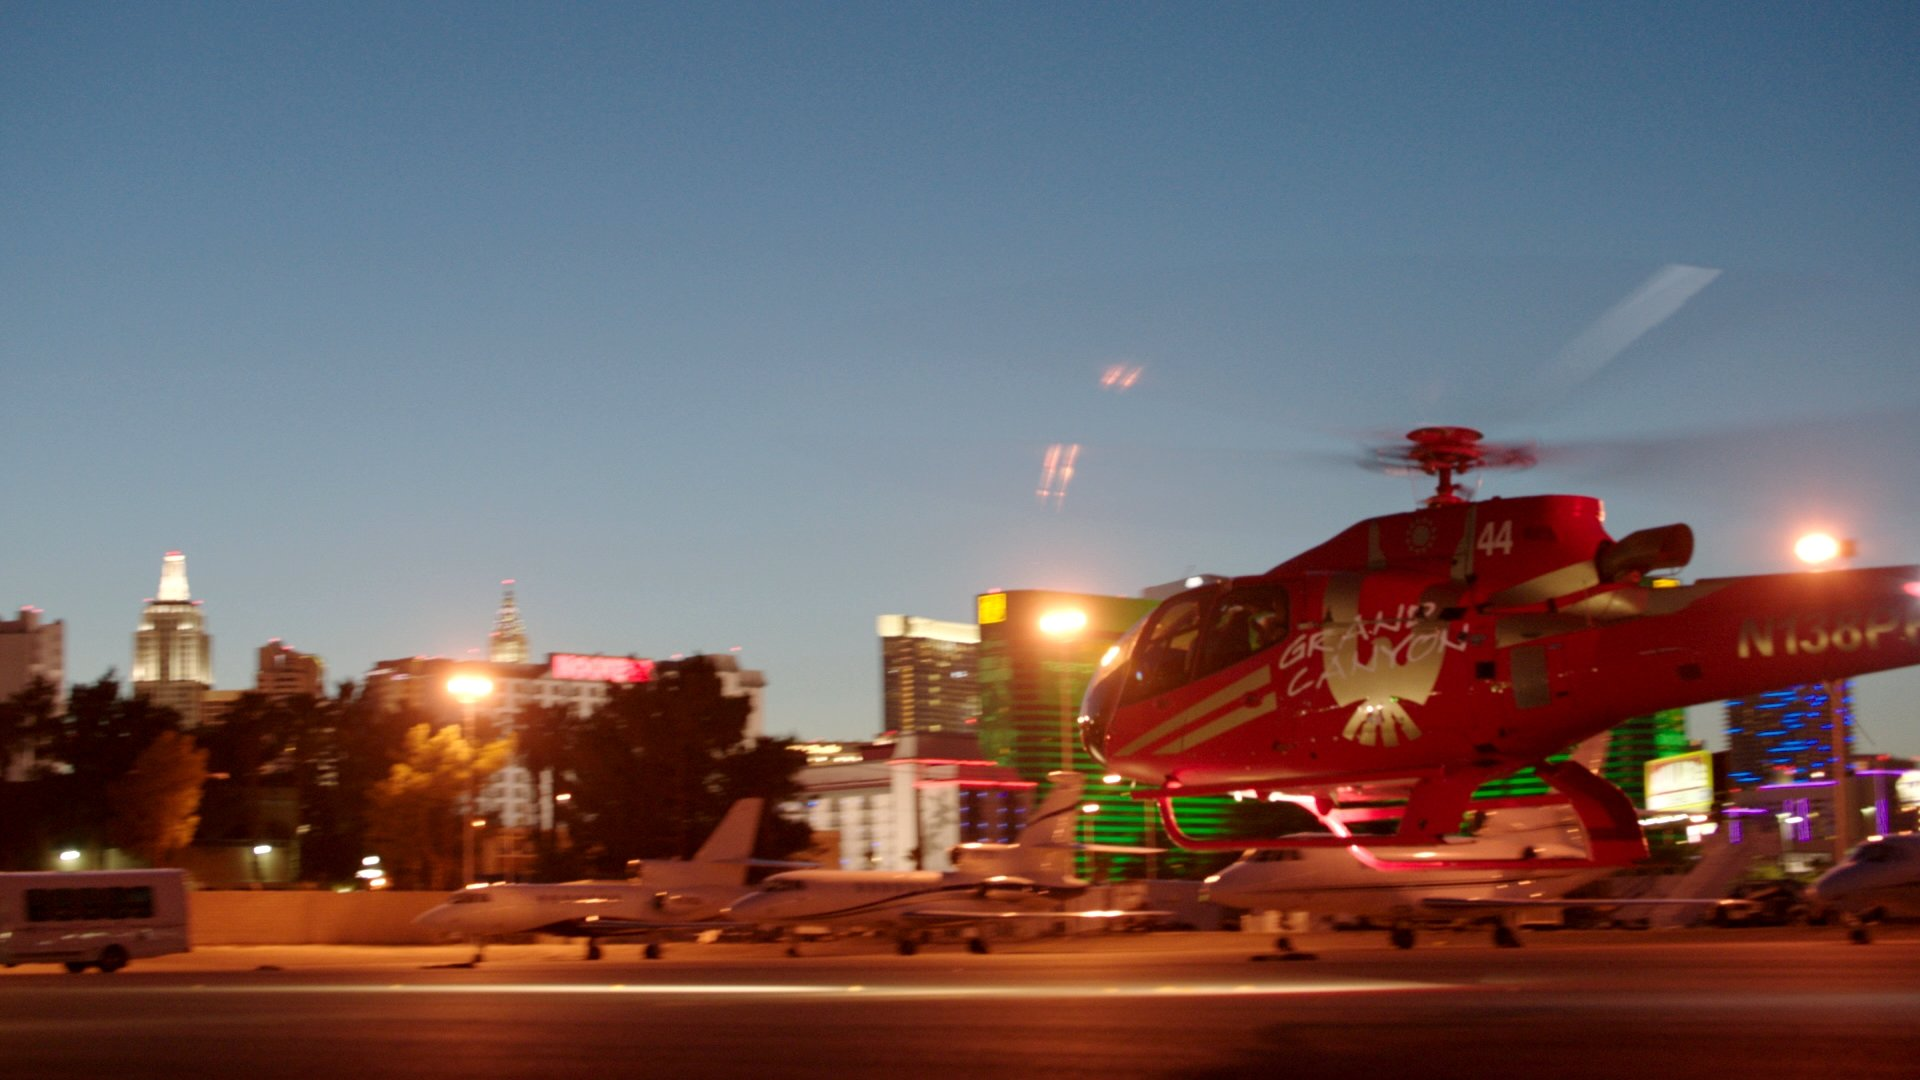 A helicopter setting off on a Las Vegas Strip tour at night.